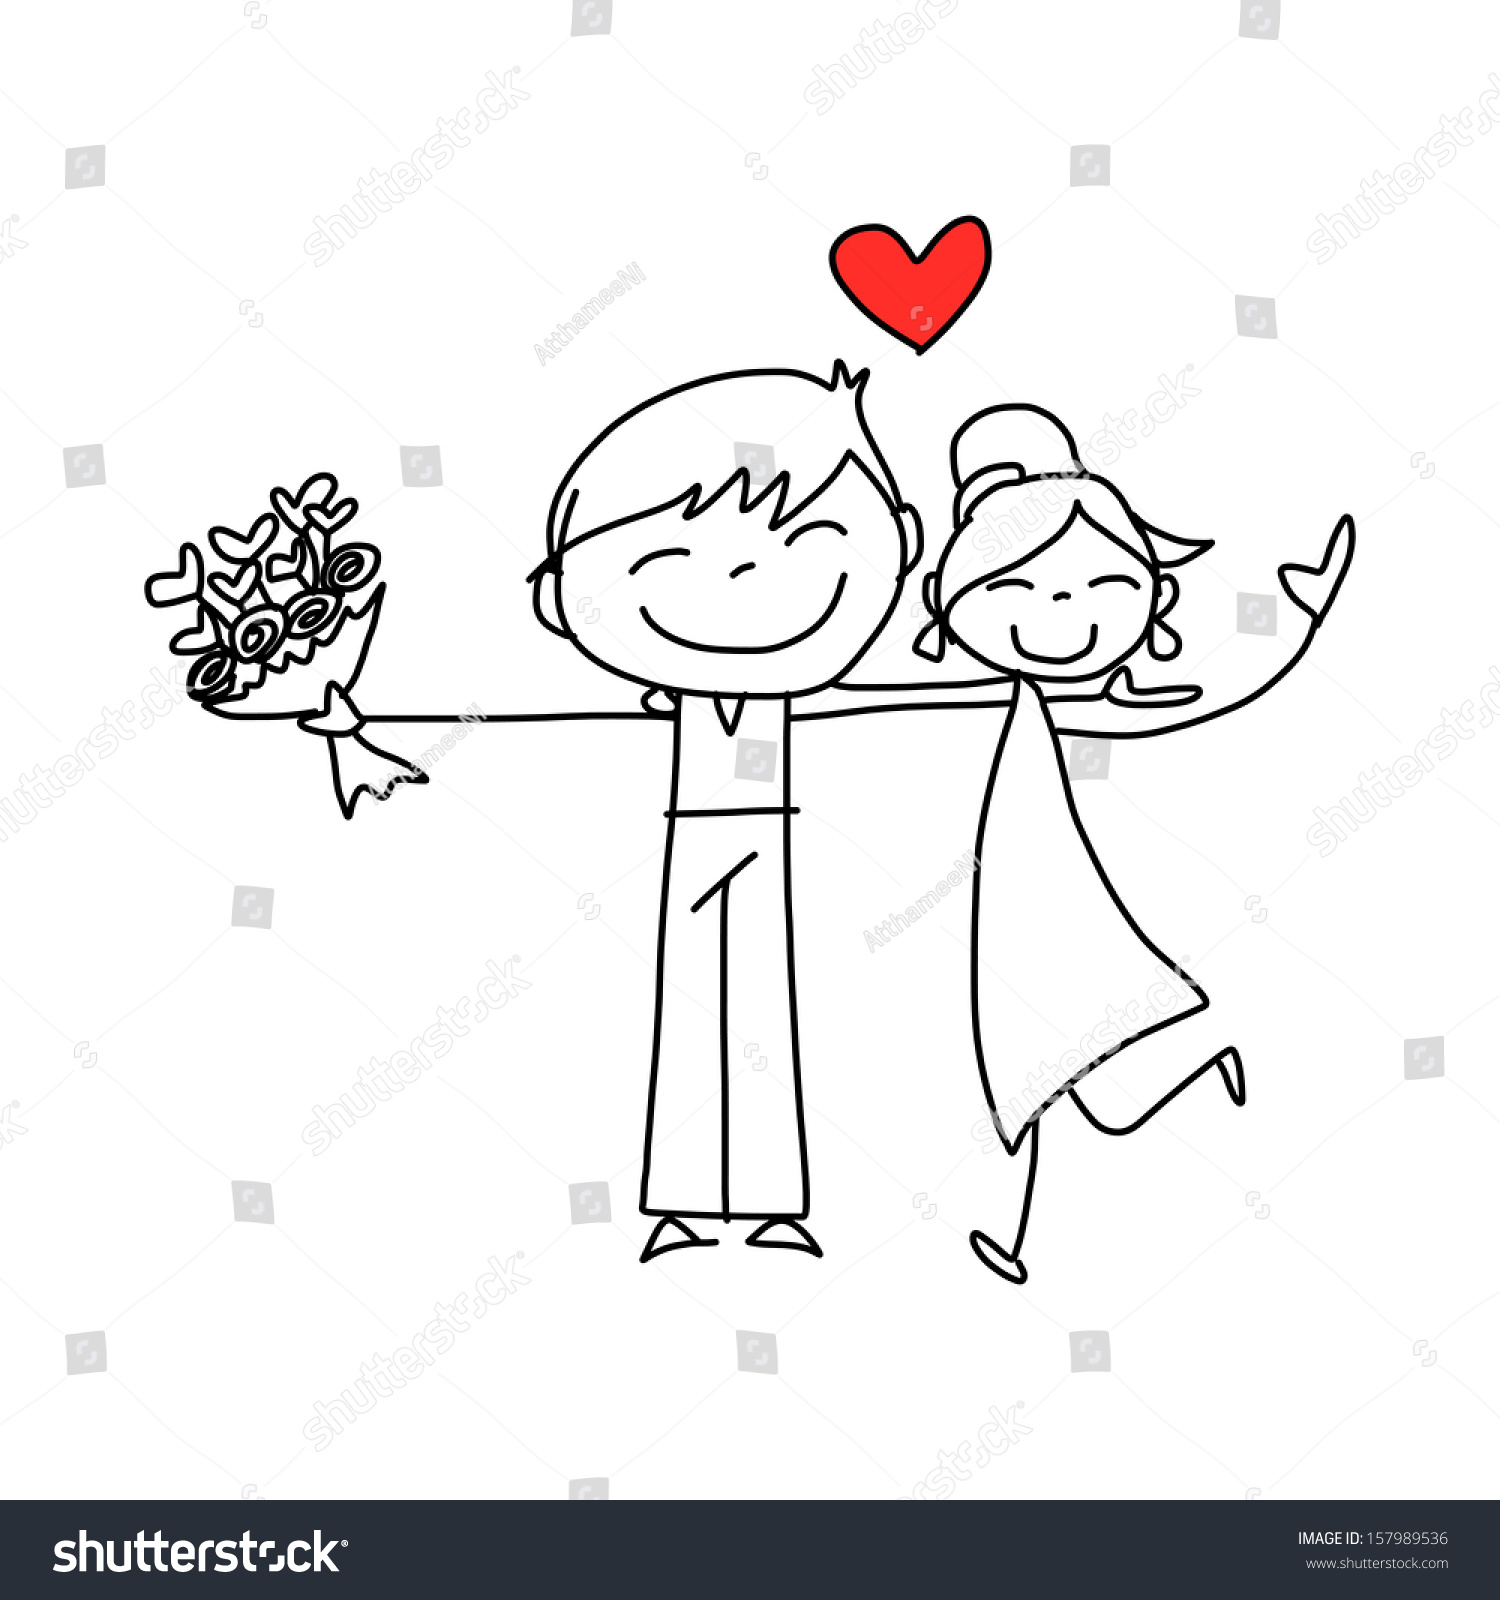 hand drawing cartoon character happy lovers wedding stock